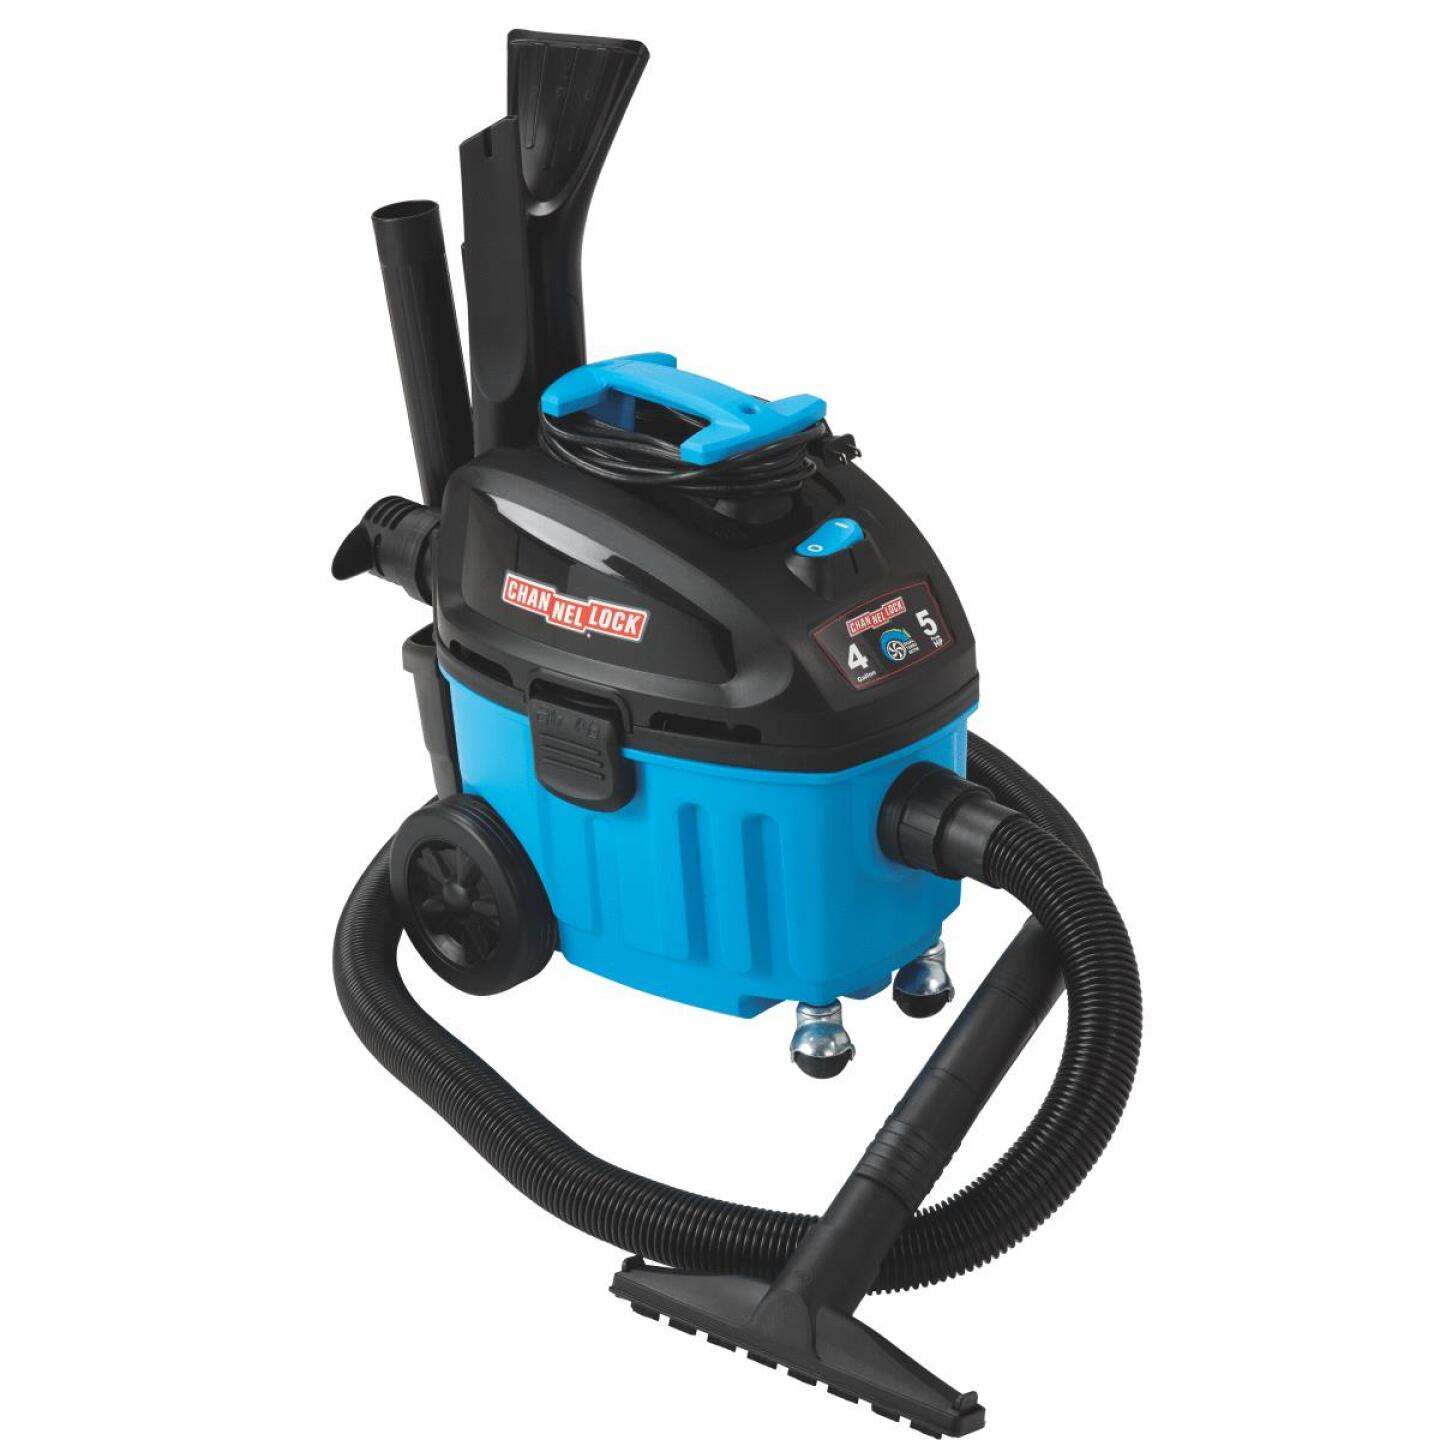 Channellock 4 Gal. 5.0-Peak HP Contractor Wet/Dry Vacuum Image 14